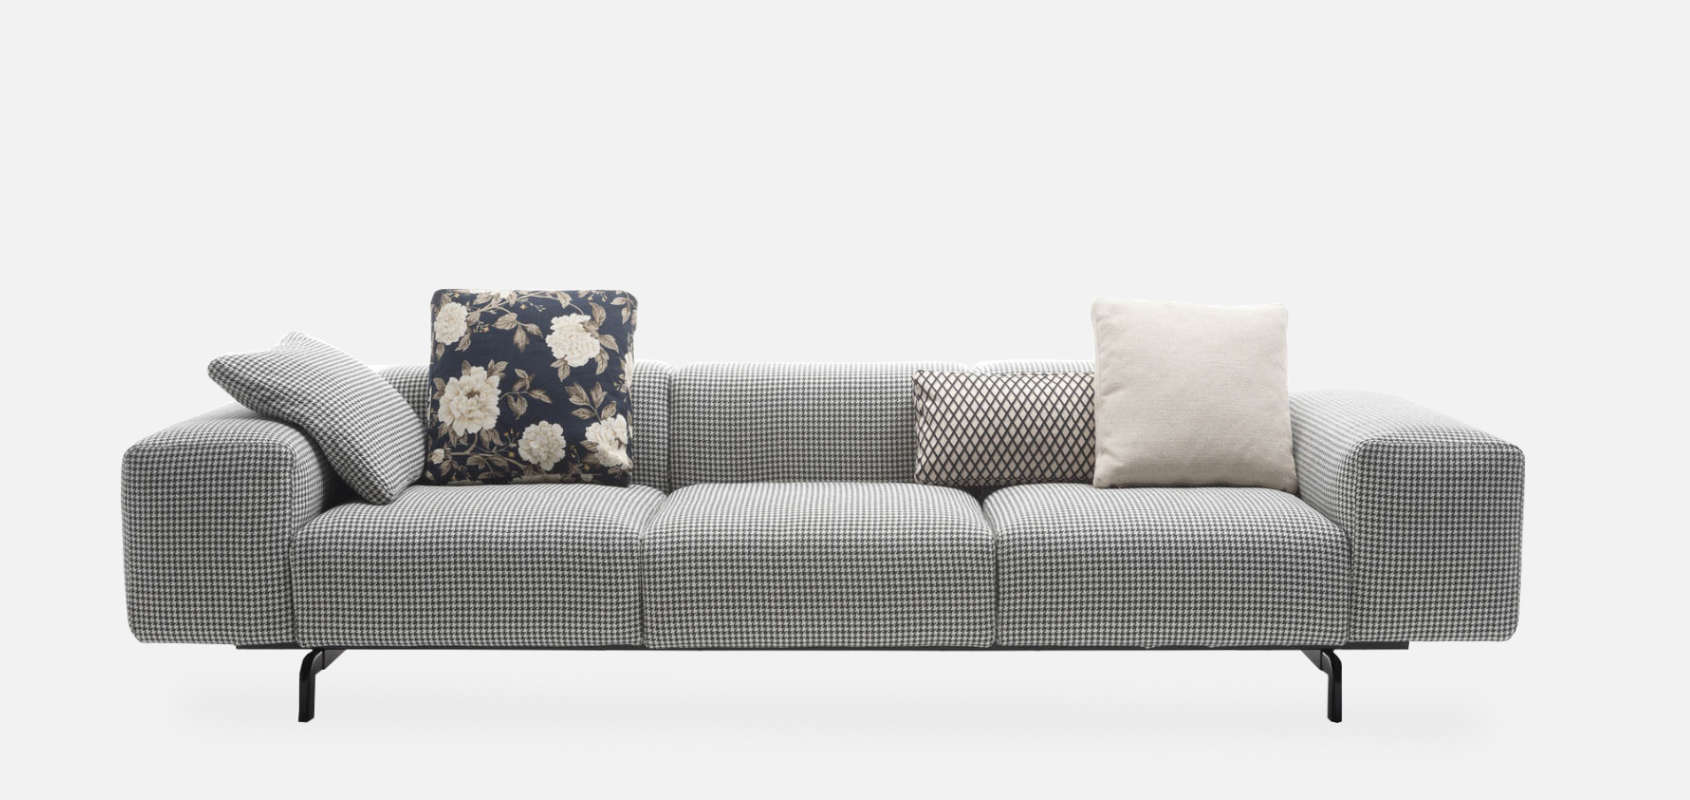 Kartell Sofa Largo Modular Sofa By Piero Lissoni For Kartell Residential